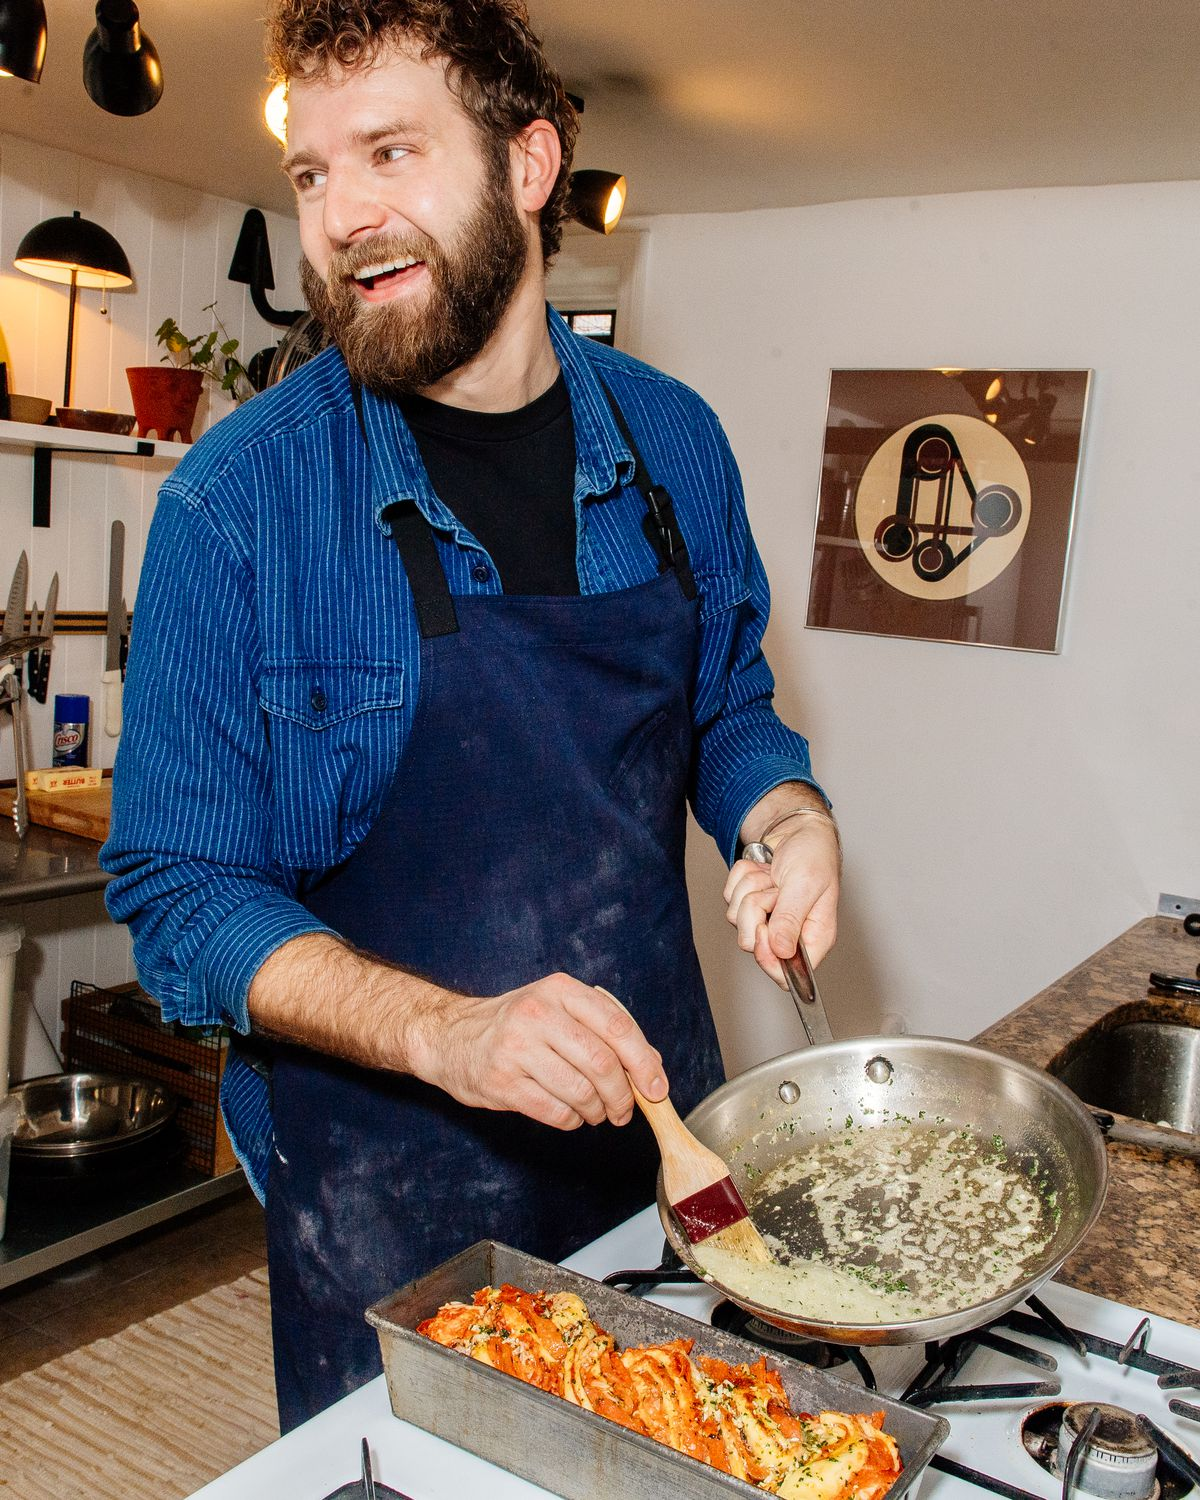 Bearded man wearing apron smiles while brushing butter from a pan in a kitchen.